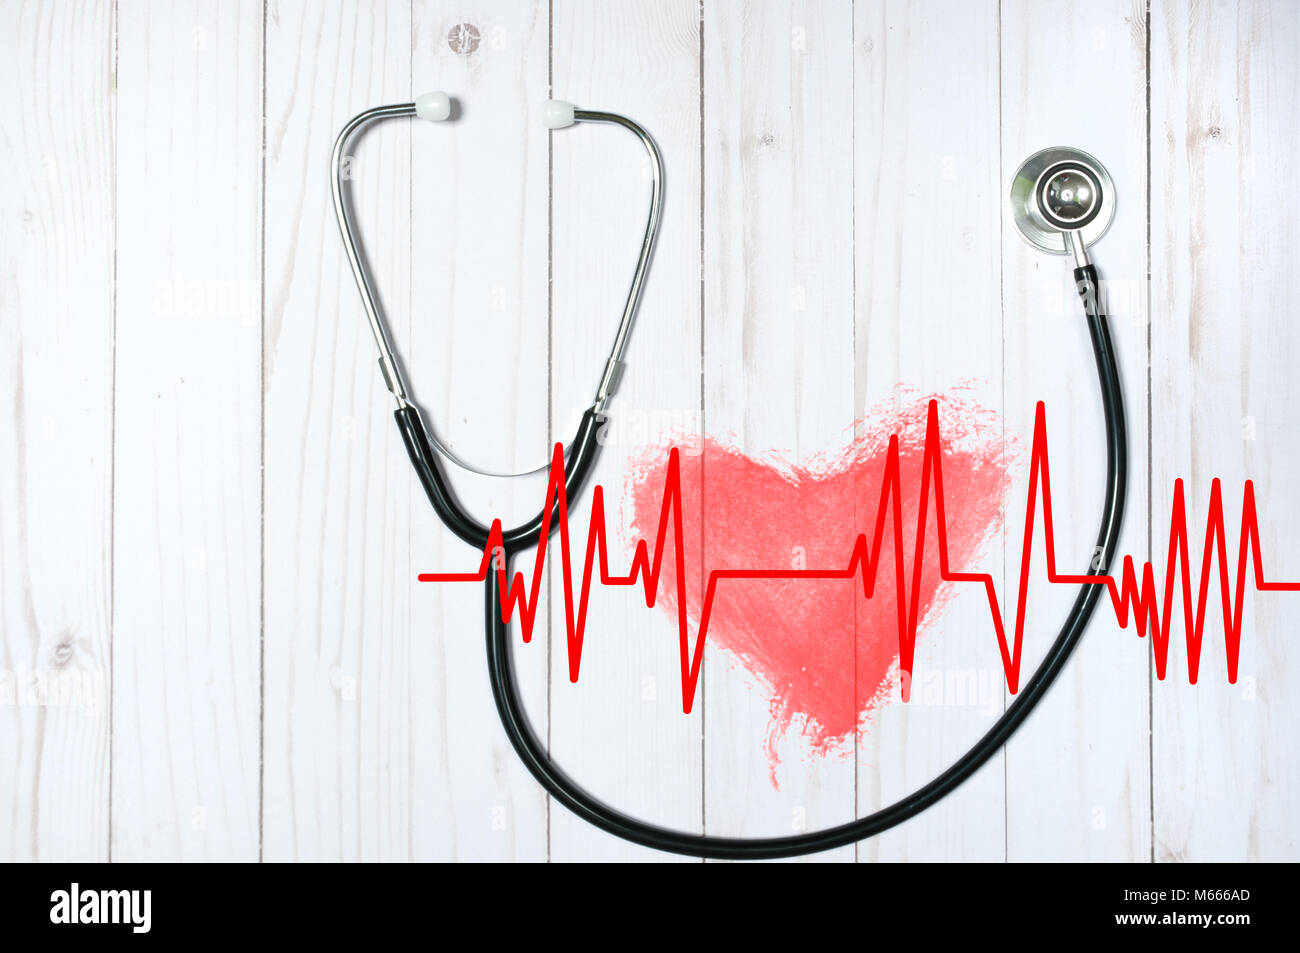 Medical stethoscope and red heart with cardiogram on desk. Health Concepts - Stock Image